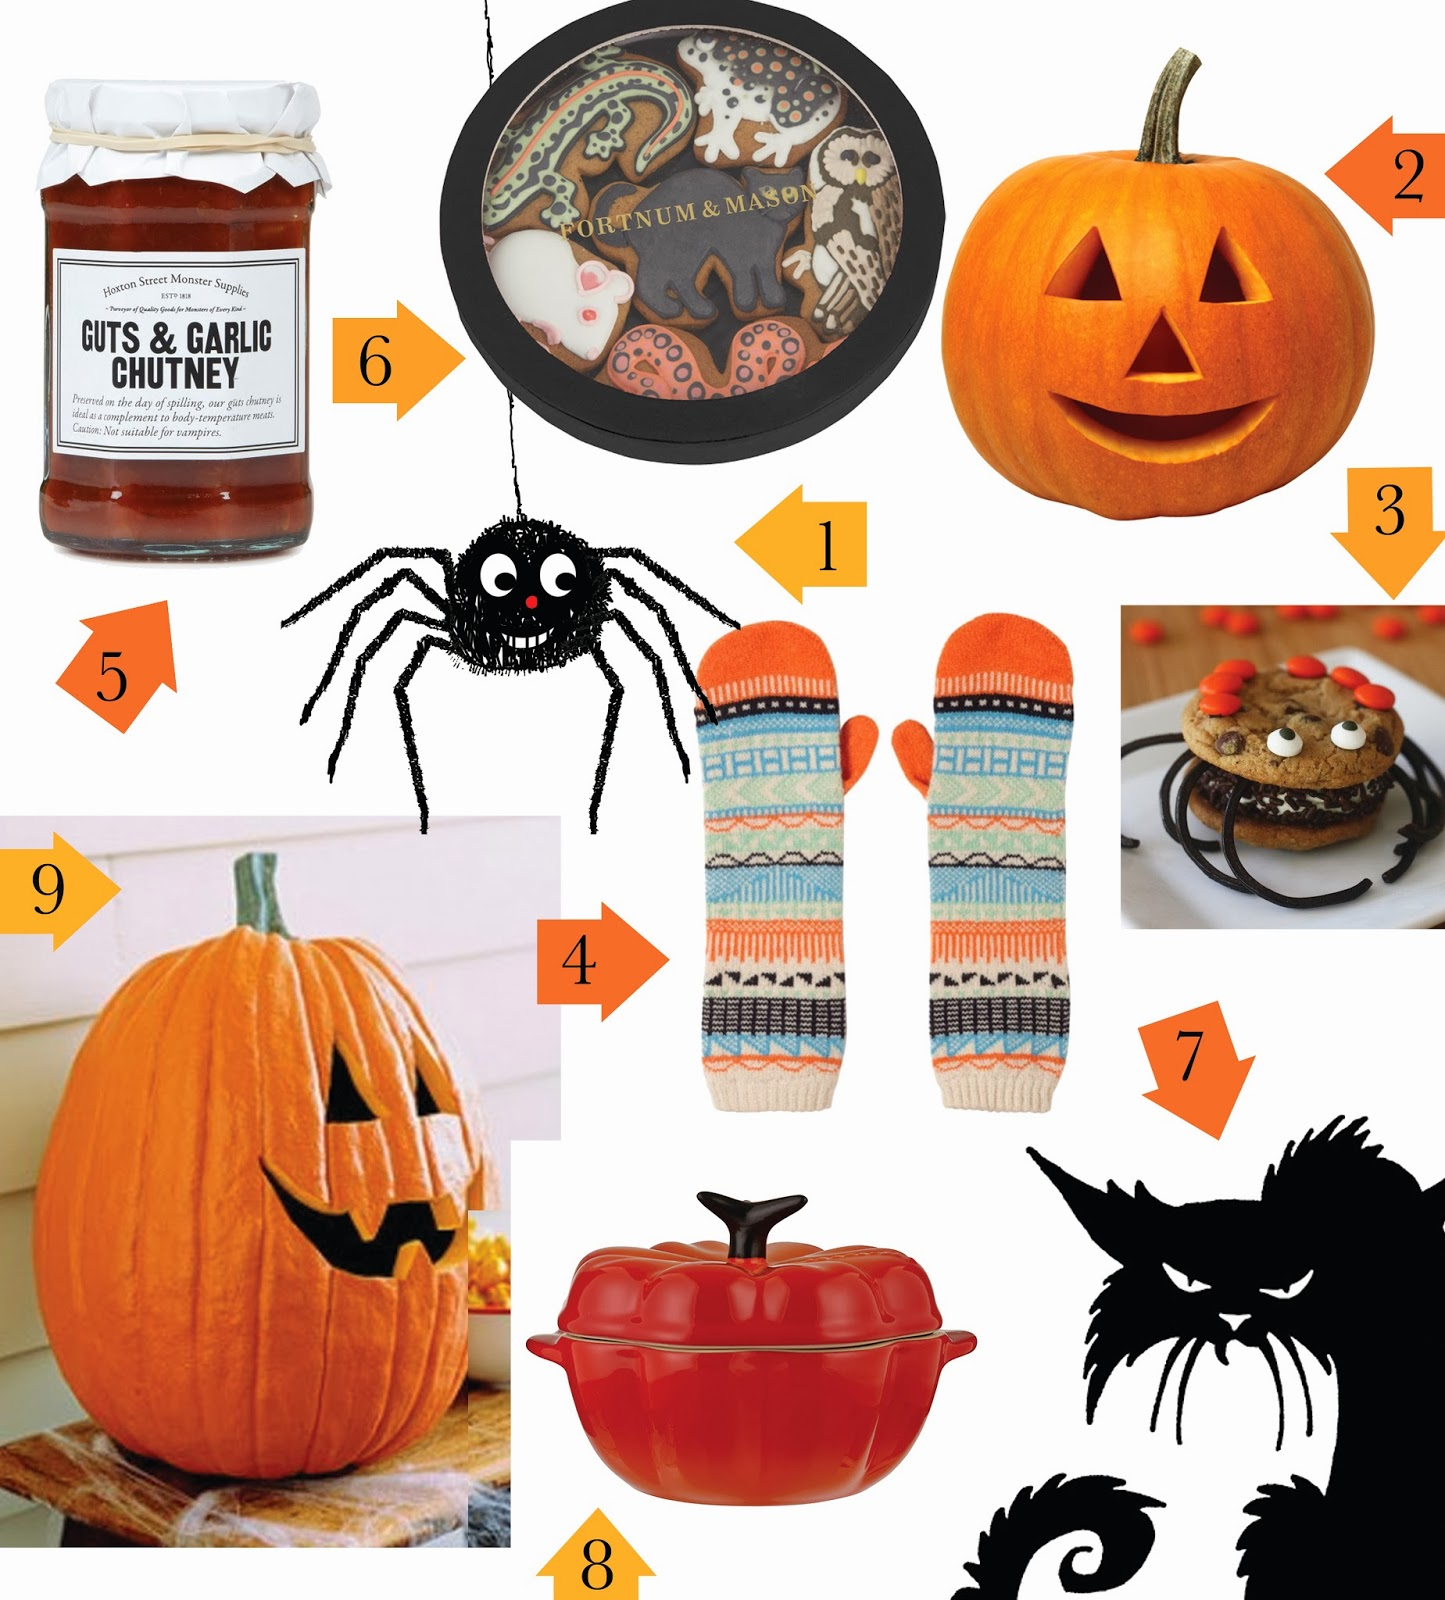 Uk 8 Le Creuset From John Lewis 9 Carved Pumkin From Martha Stewart.9 Happy New Years Kiss Image 2014